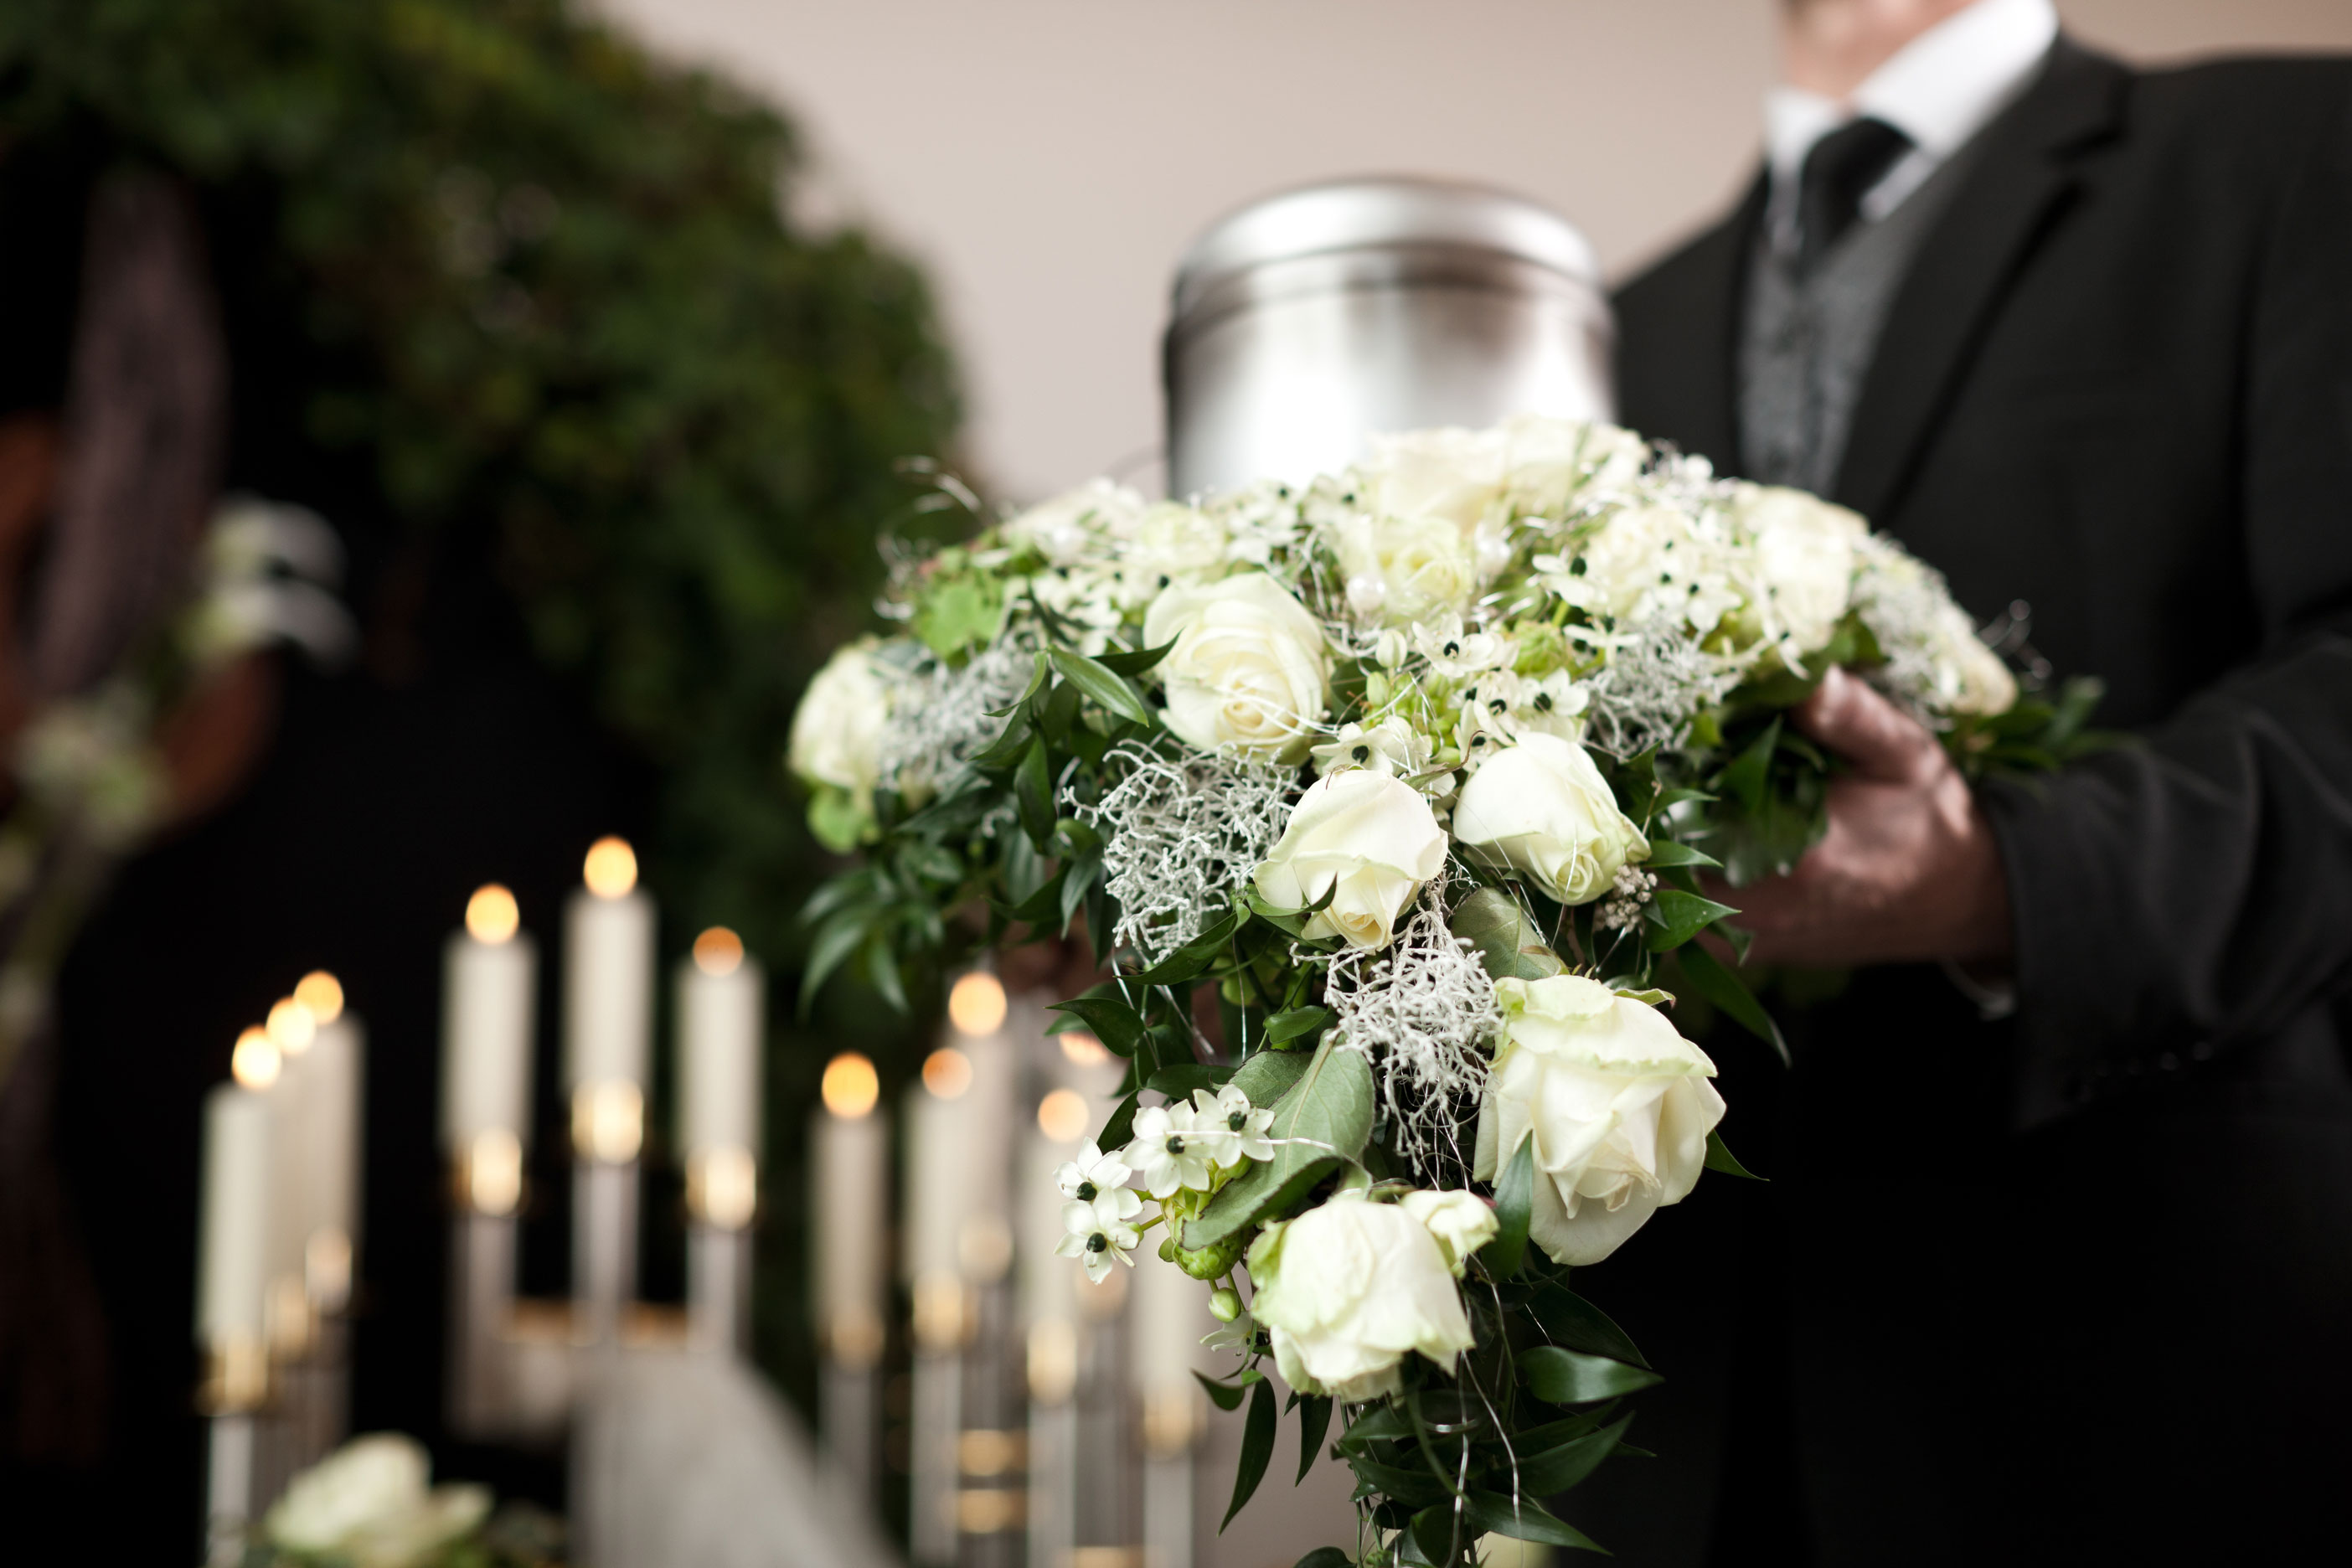 Funeral Services Cremation Services Kingsville Texas